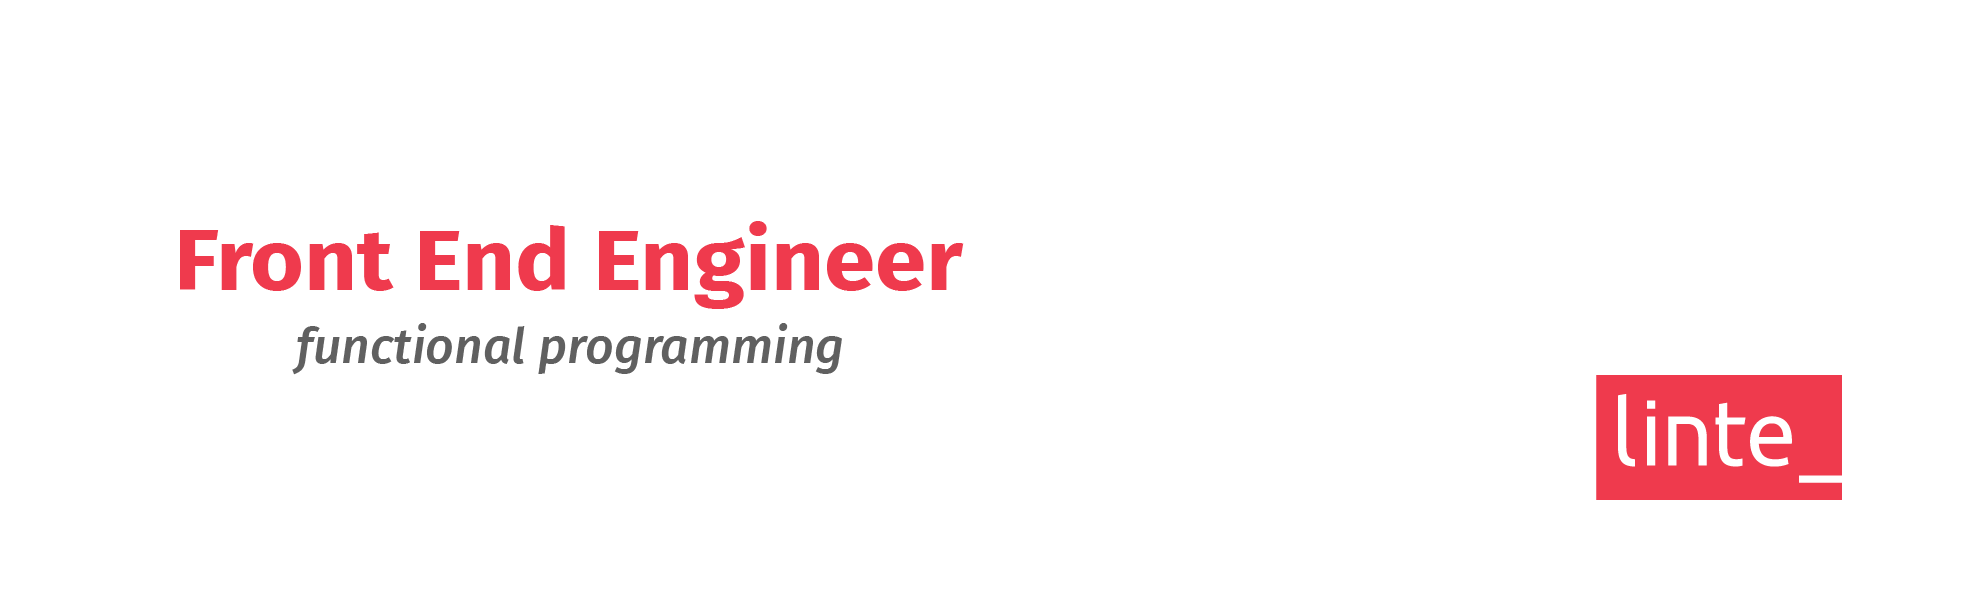 Front End Engineer